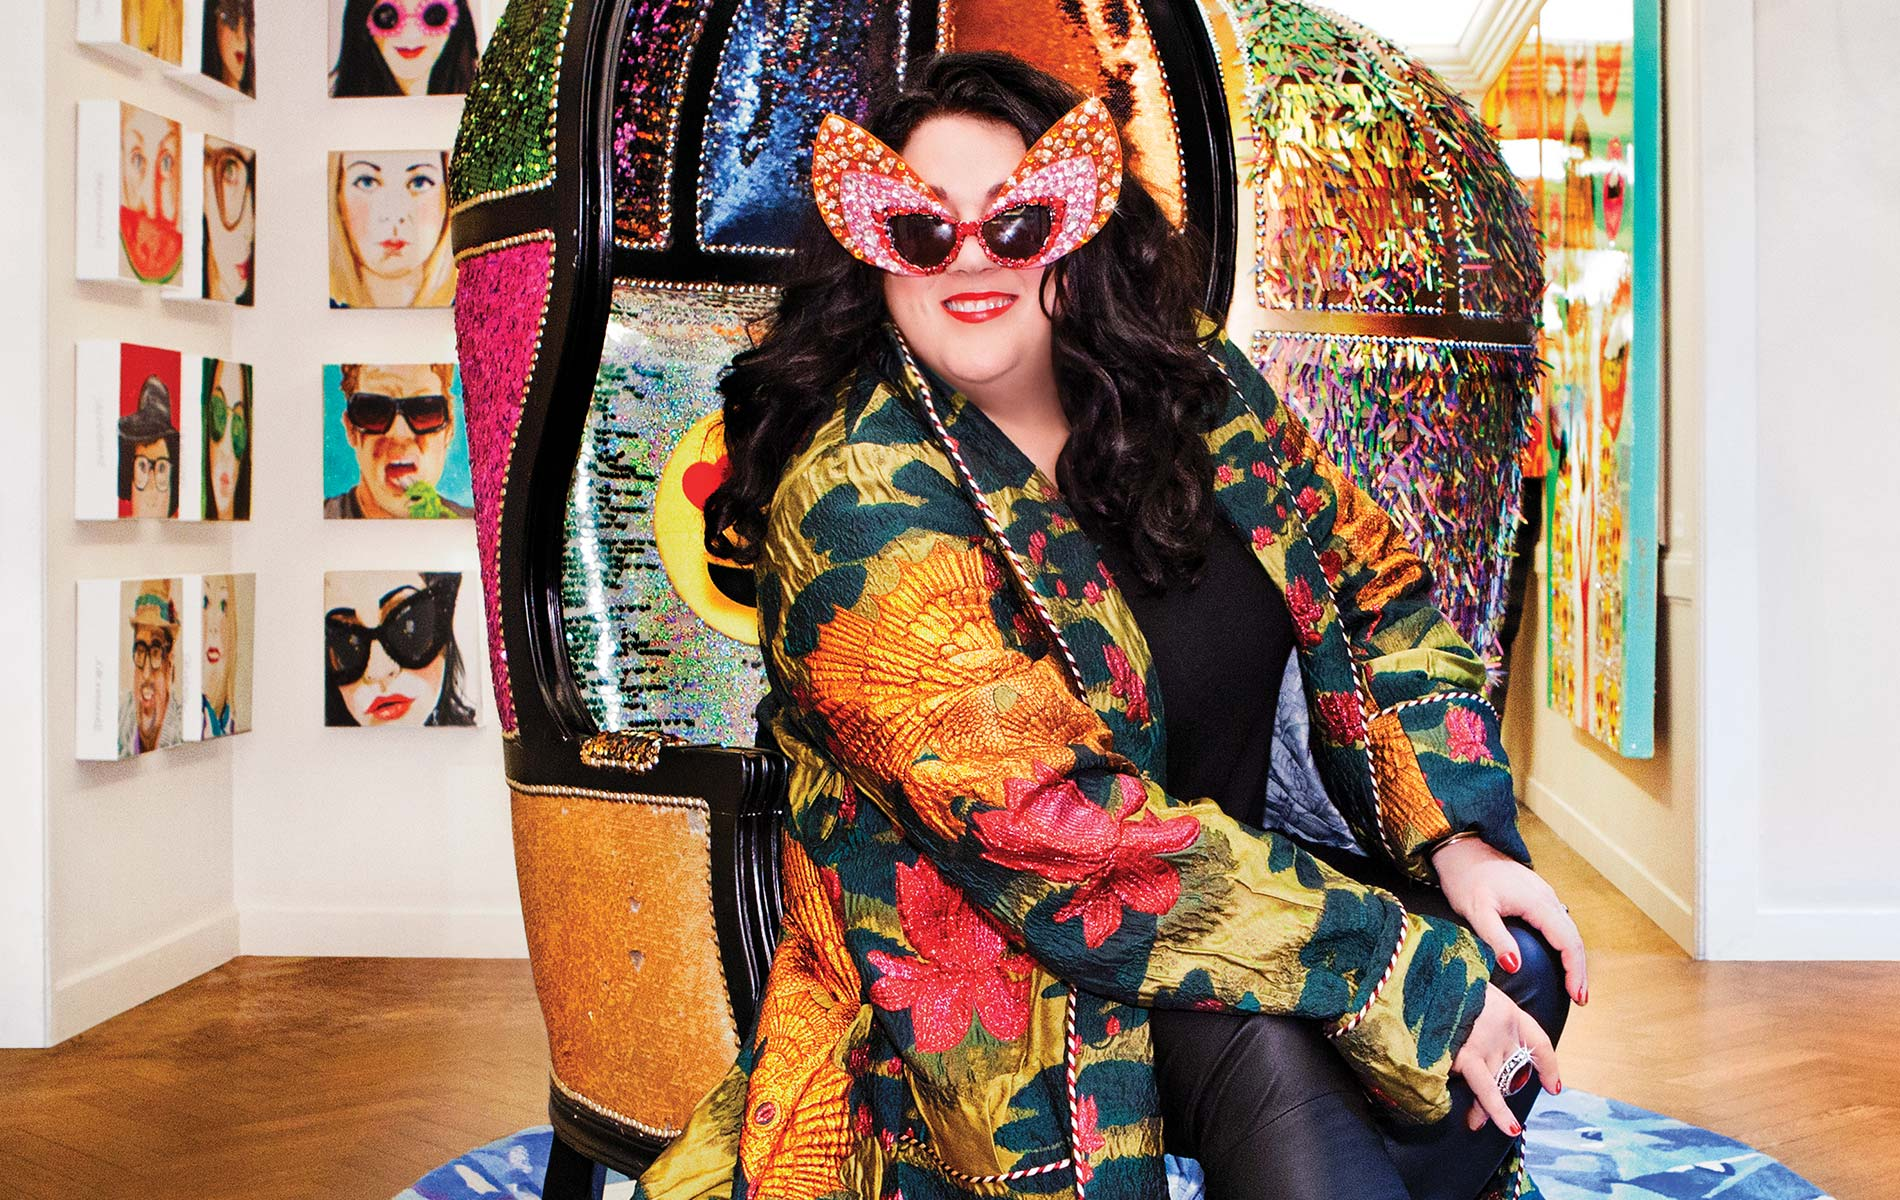 Ashley Longshore wearing a Gucci coat sitting in a customized Longshore chair on the seventh floor of Bergdorf Goodman during her pop-up gallery installment